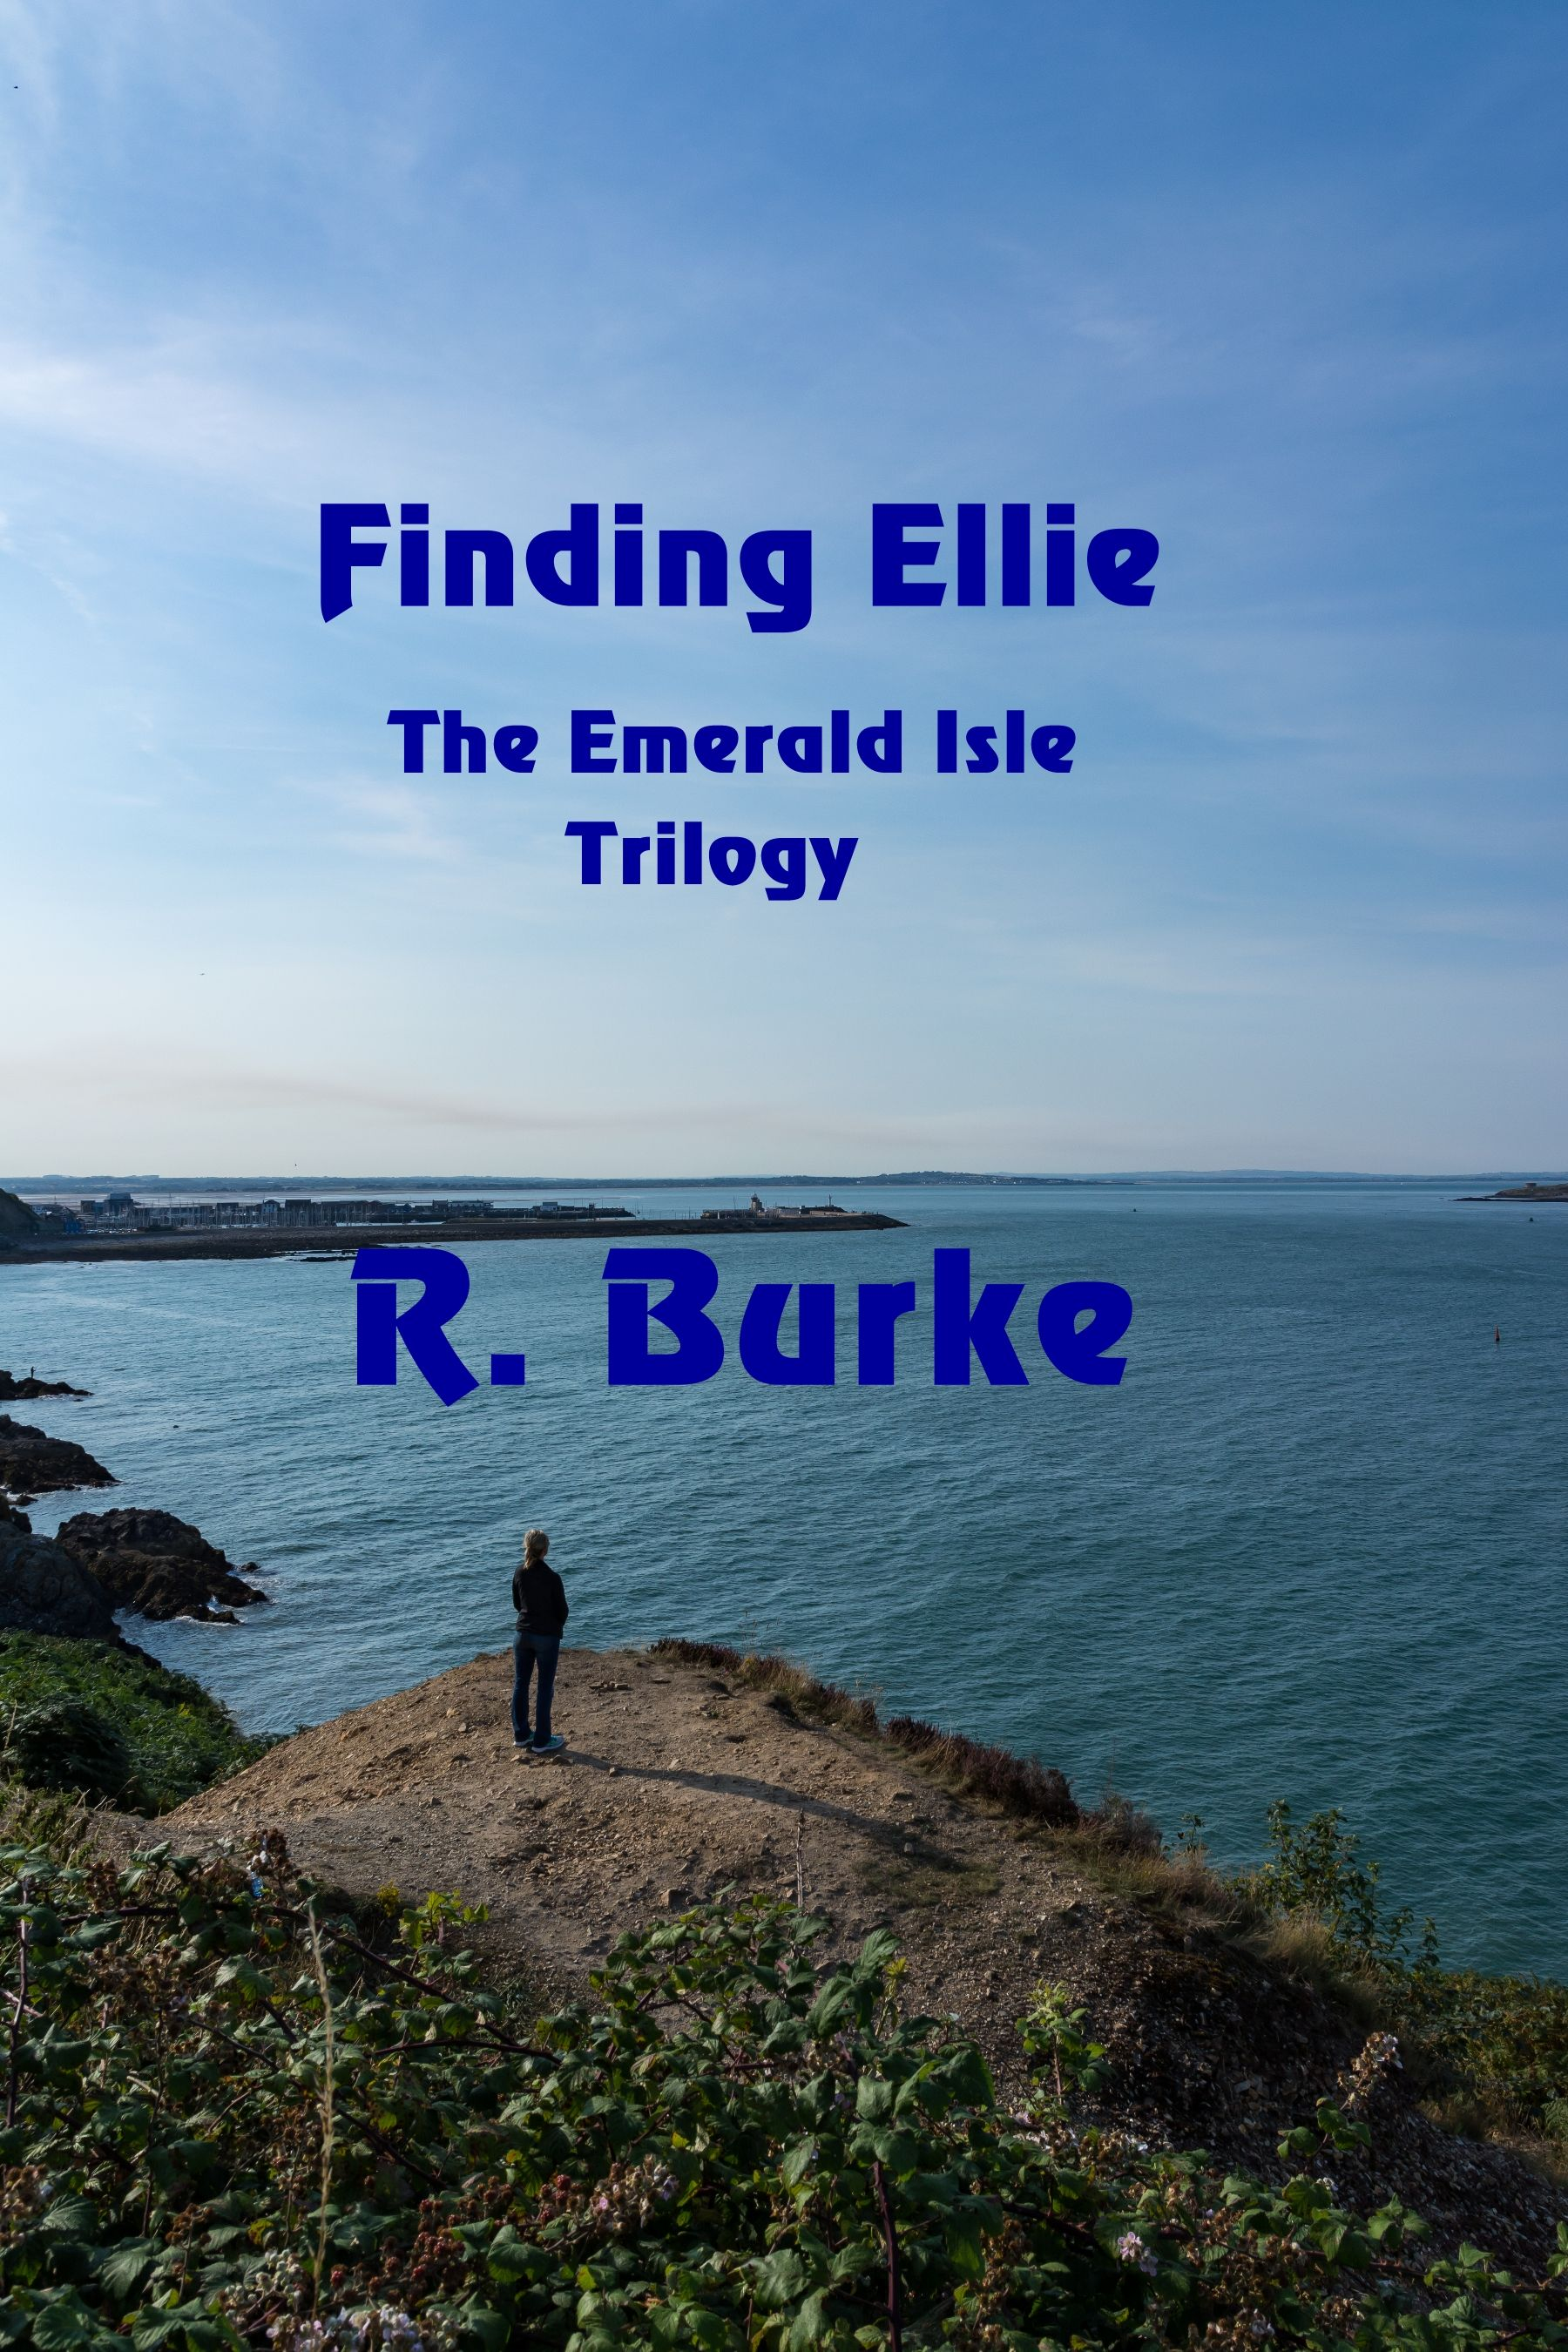 The Emerald Isle Trilogy Finding Ellie's Ebook Image